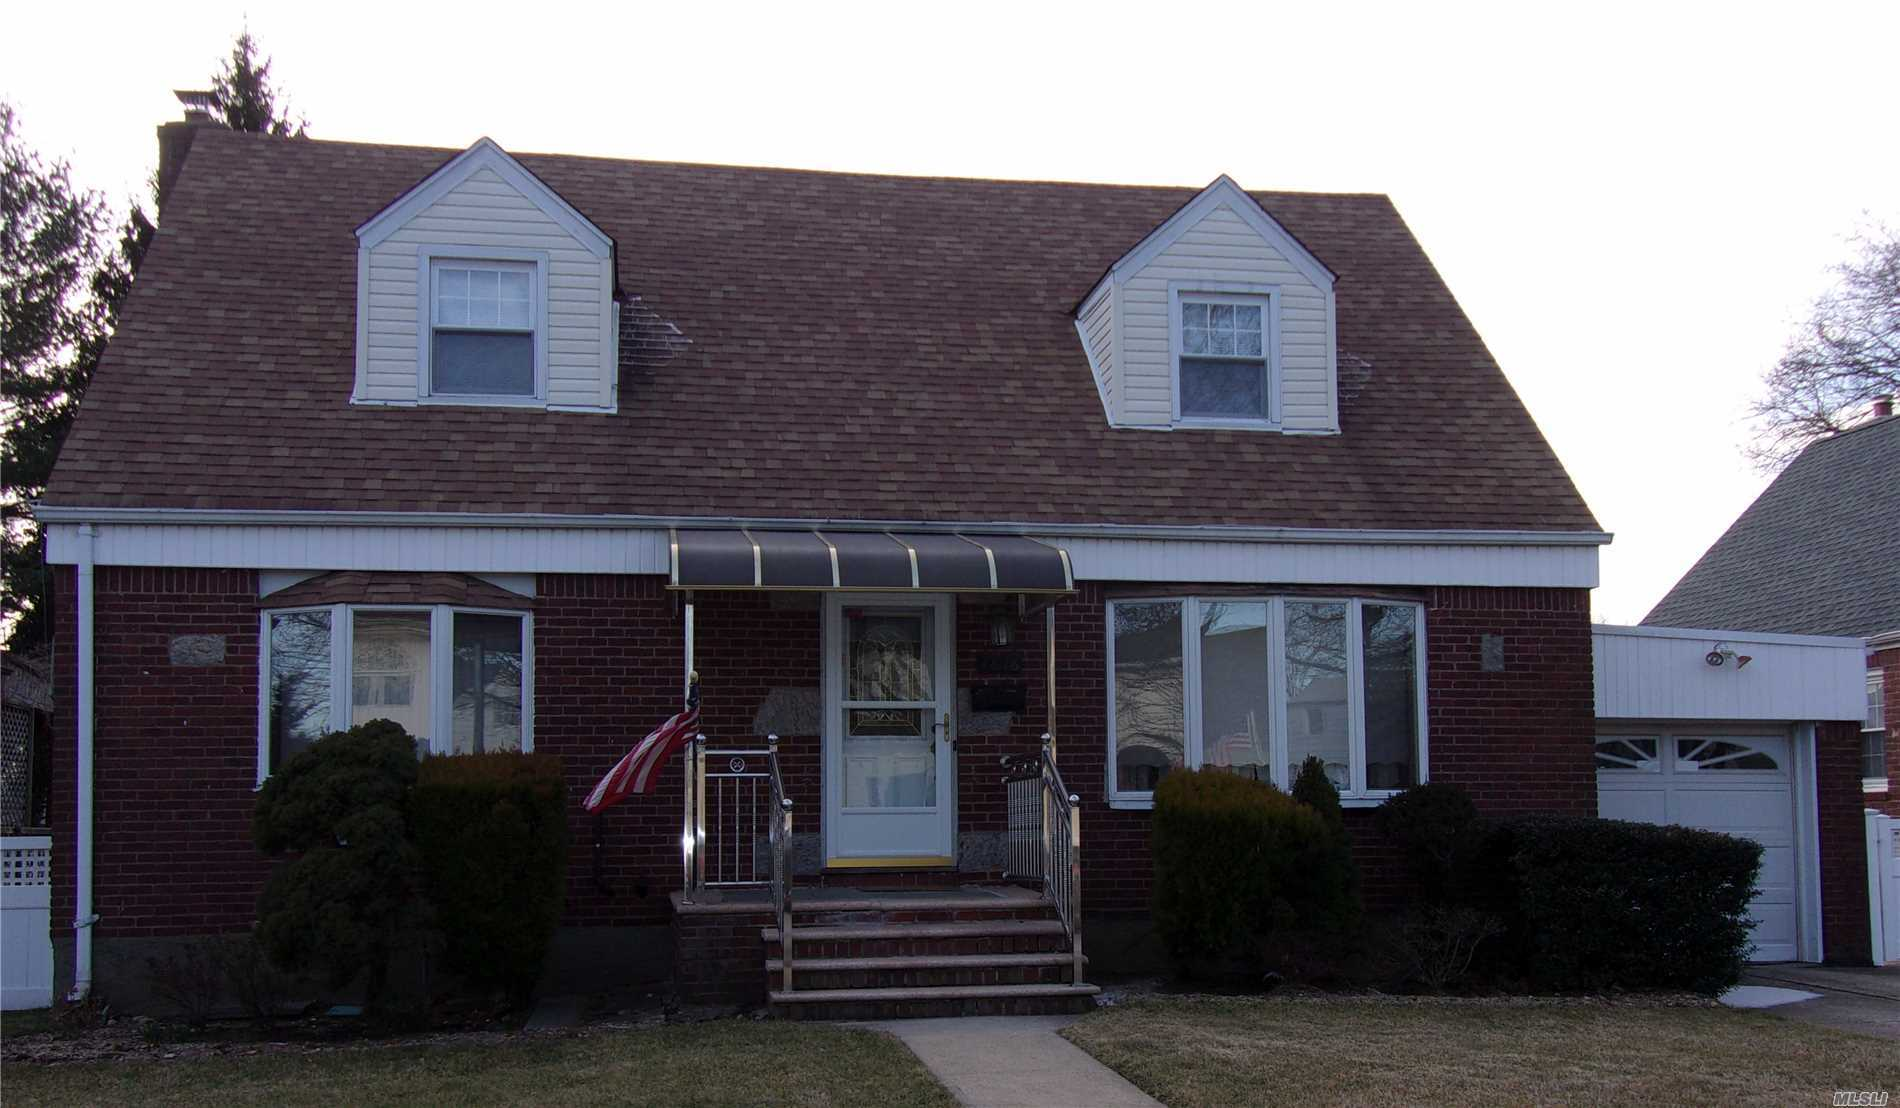 Lovely , Well Maintained , Wide Line Cape In Floral Park. 60X100 Property With Attached Garage And Private Driveway. Desireable Location, Close To Transportation, Shopping And Hospitals. Hardwood Floors Throughout, Oil Heat, Gas Stove. 2 Zone Heating, In Ground Sprinklers, Sd #26.